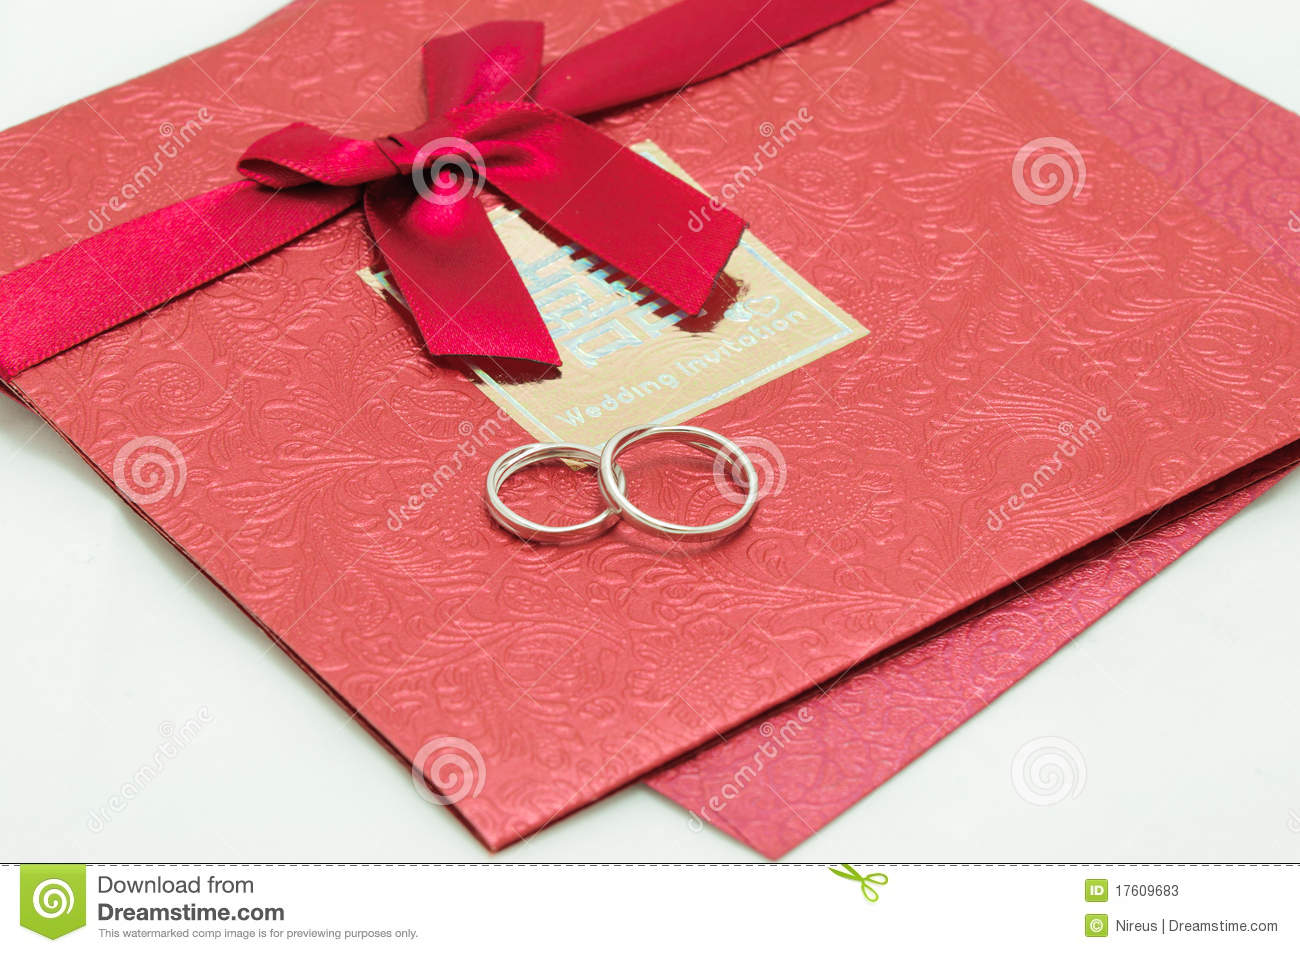 Wedding Invite Card Stock: Wedding Invitation Card Stock Image. Image Of Happiness